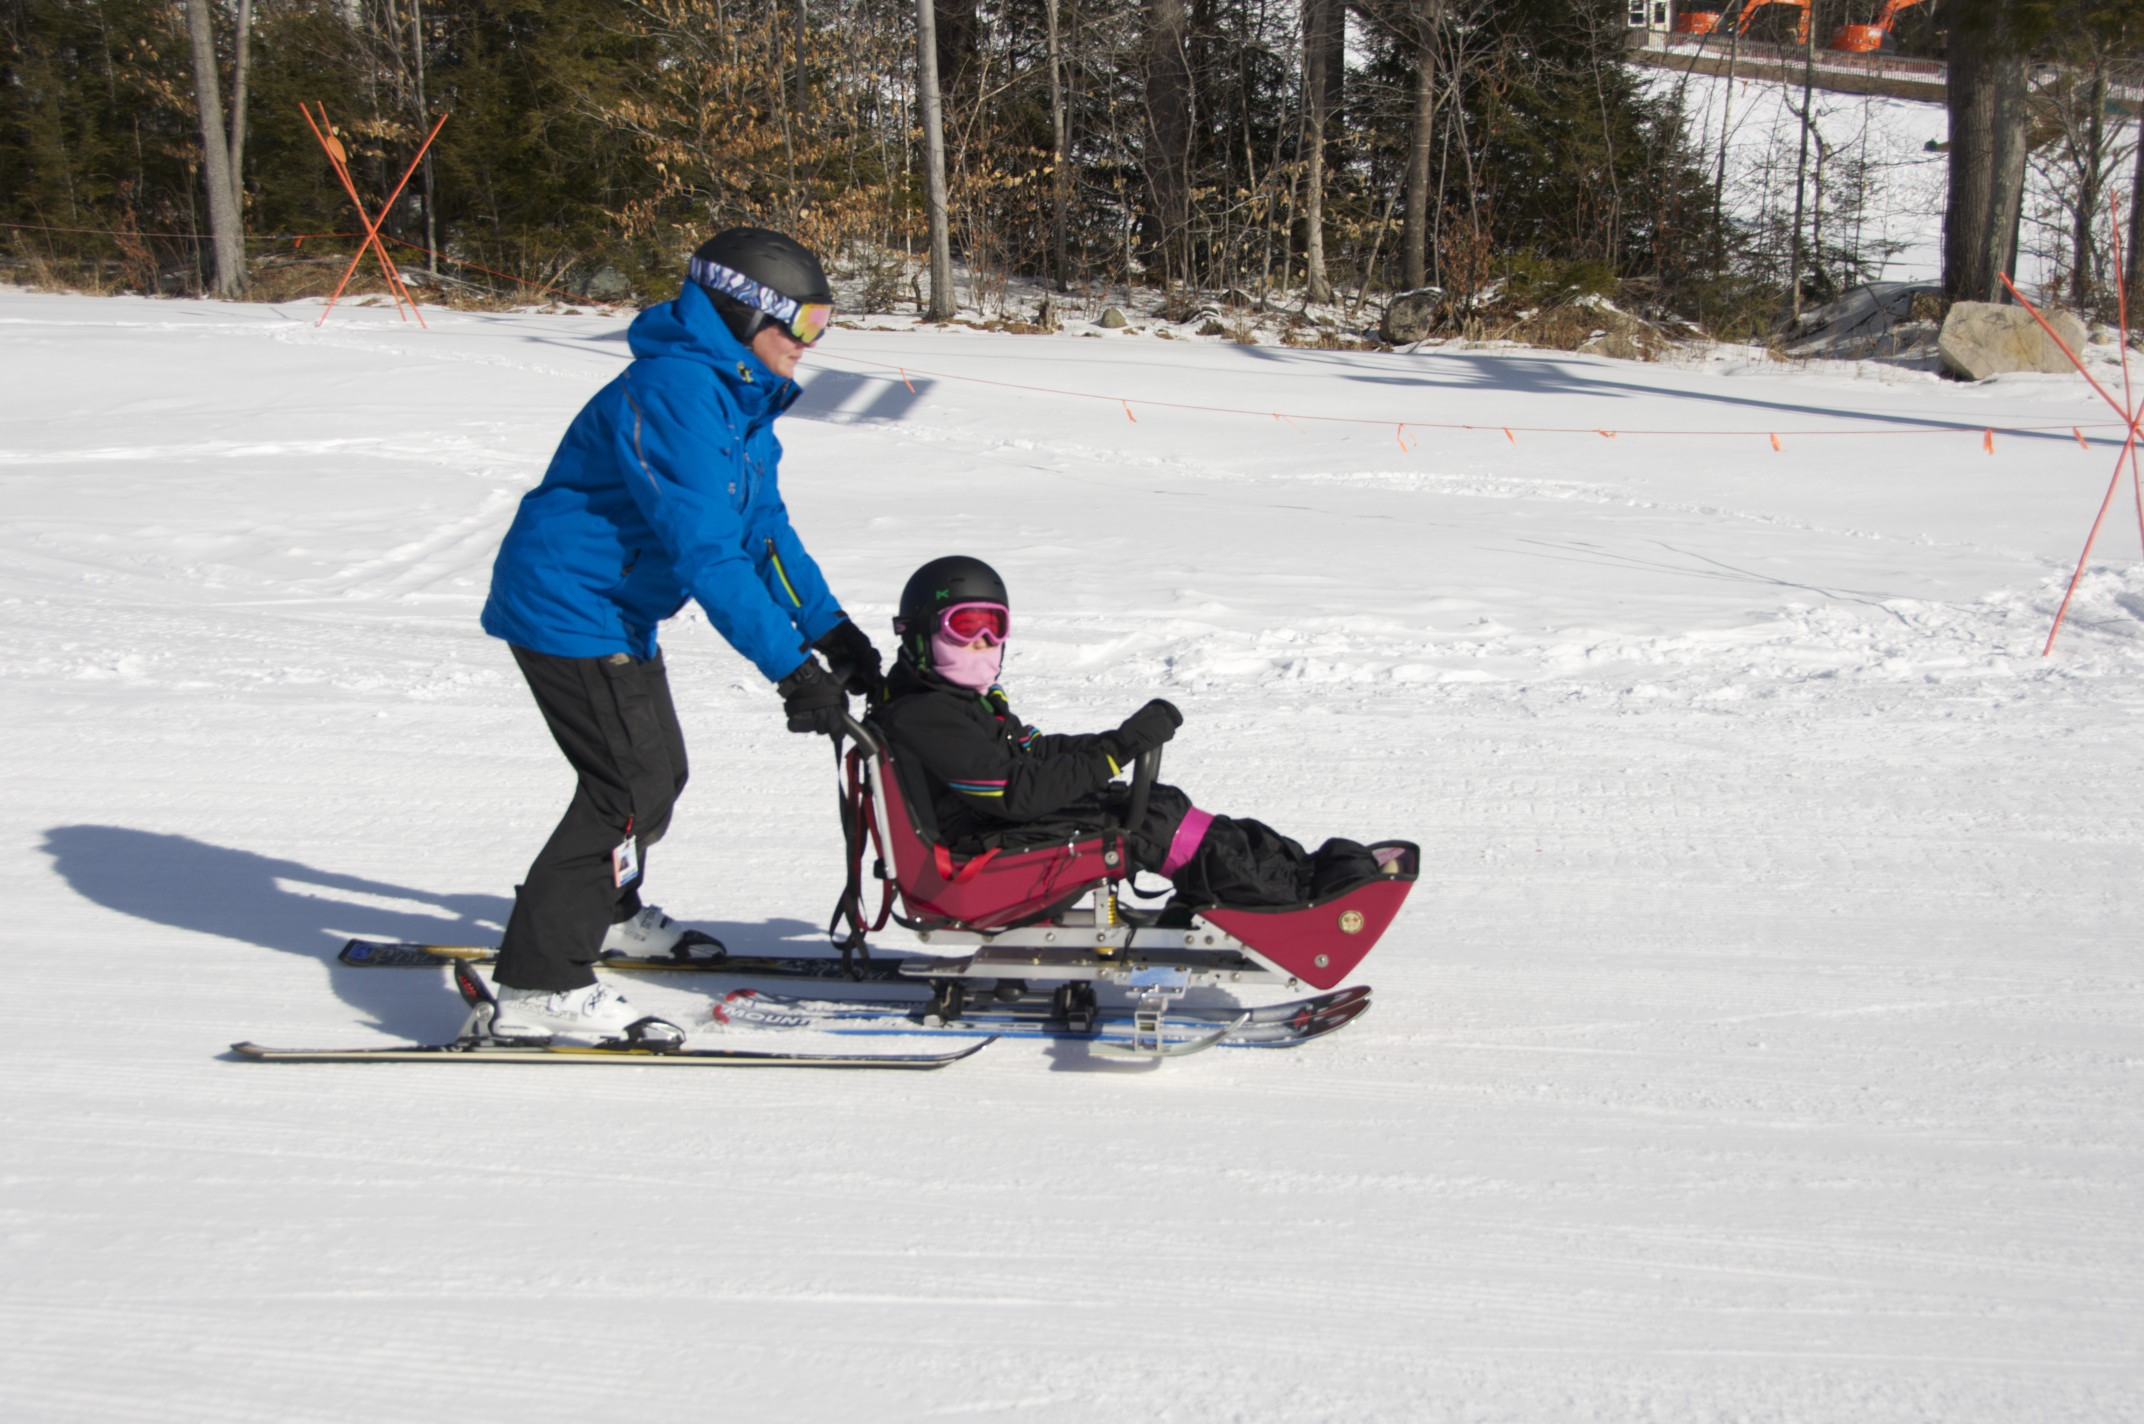 Paige Davis guides a bis-ski student back to the lift.